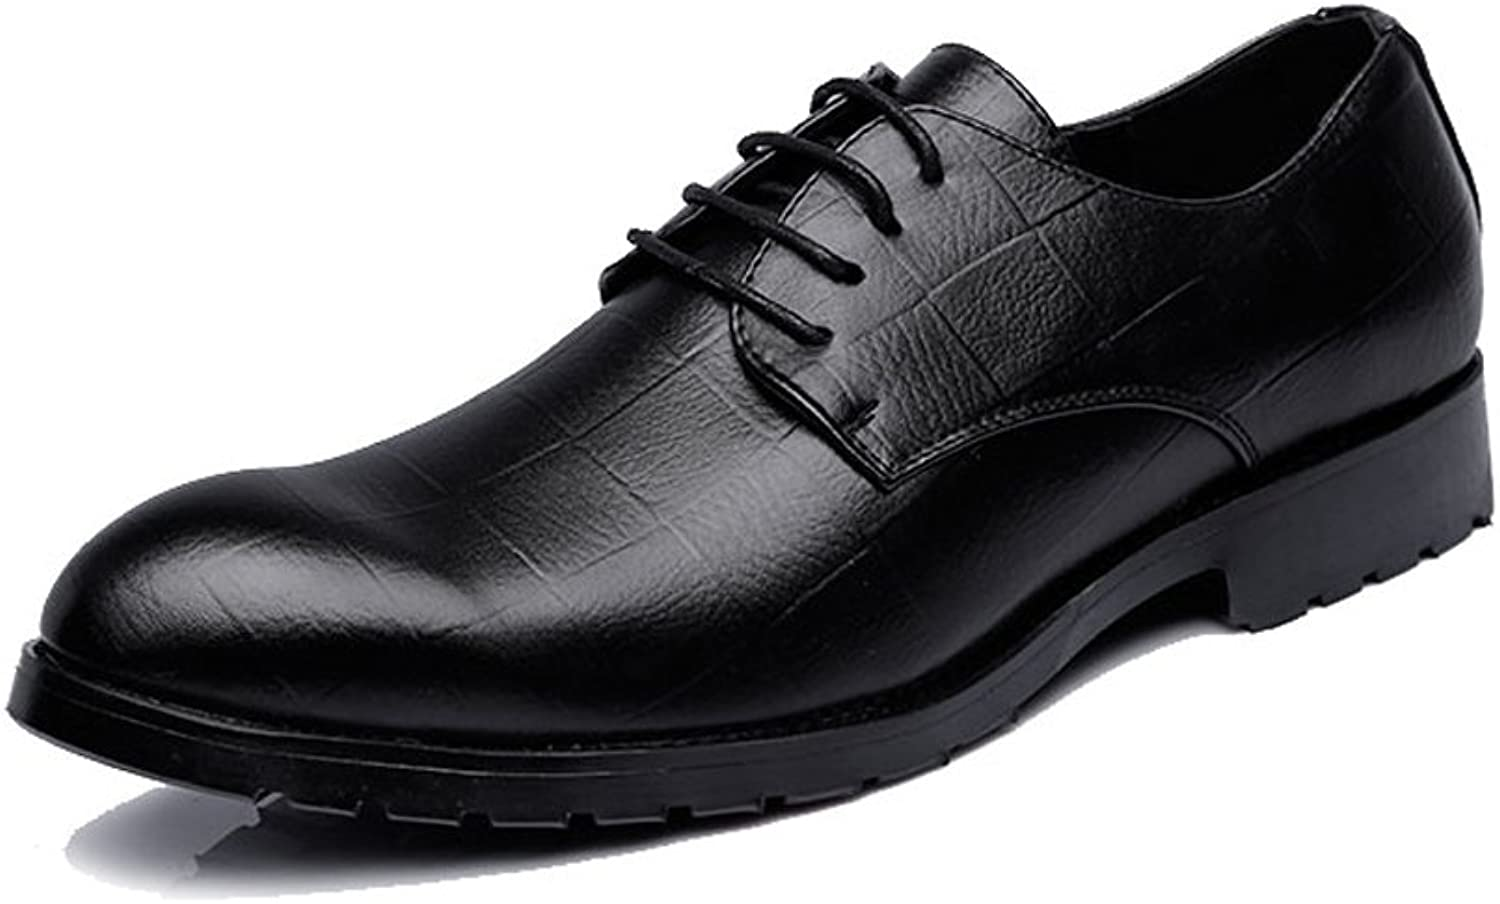 ZLQ Men's Business PU Leather shoes Classic Lace Up Loafers Square Texture Low Top Oxfords Breathable shoes